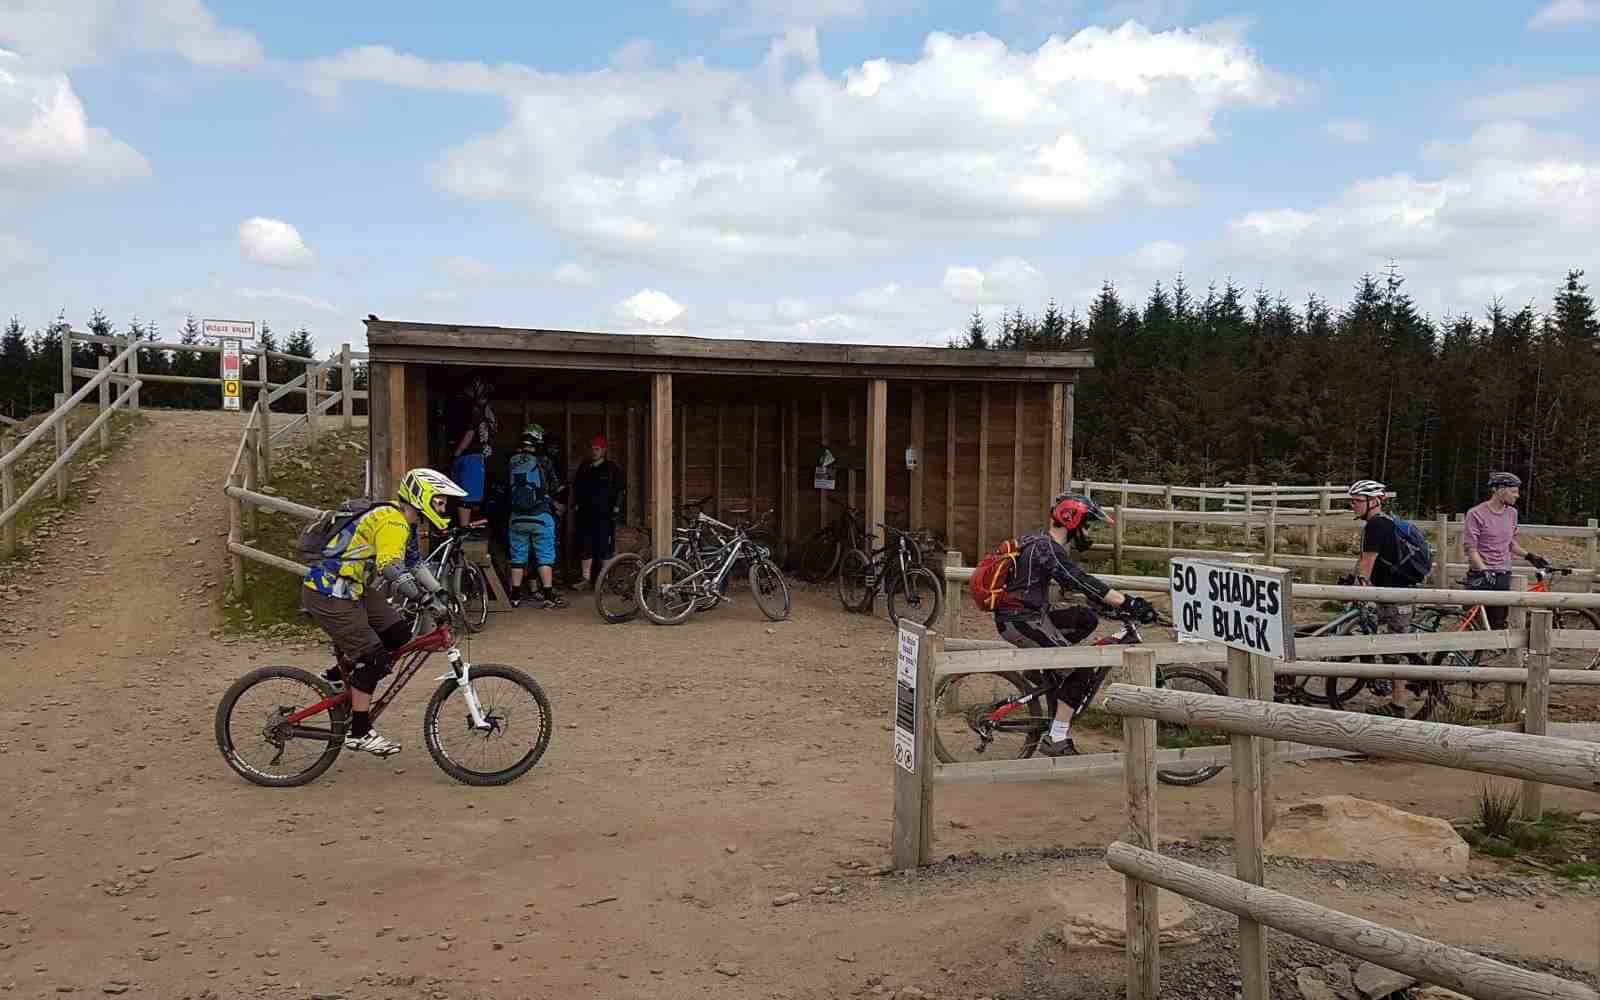 At the top of the trails Bike Park Wales centre